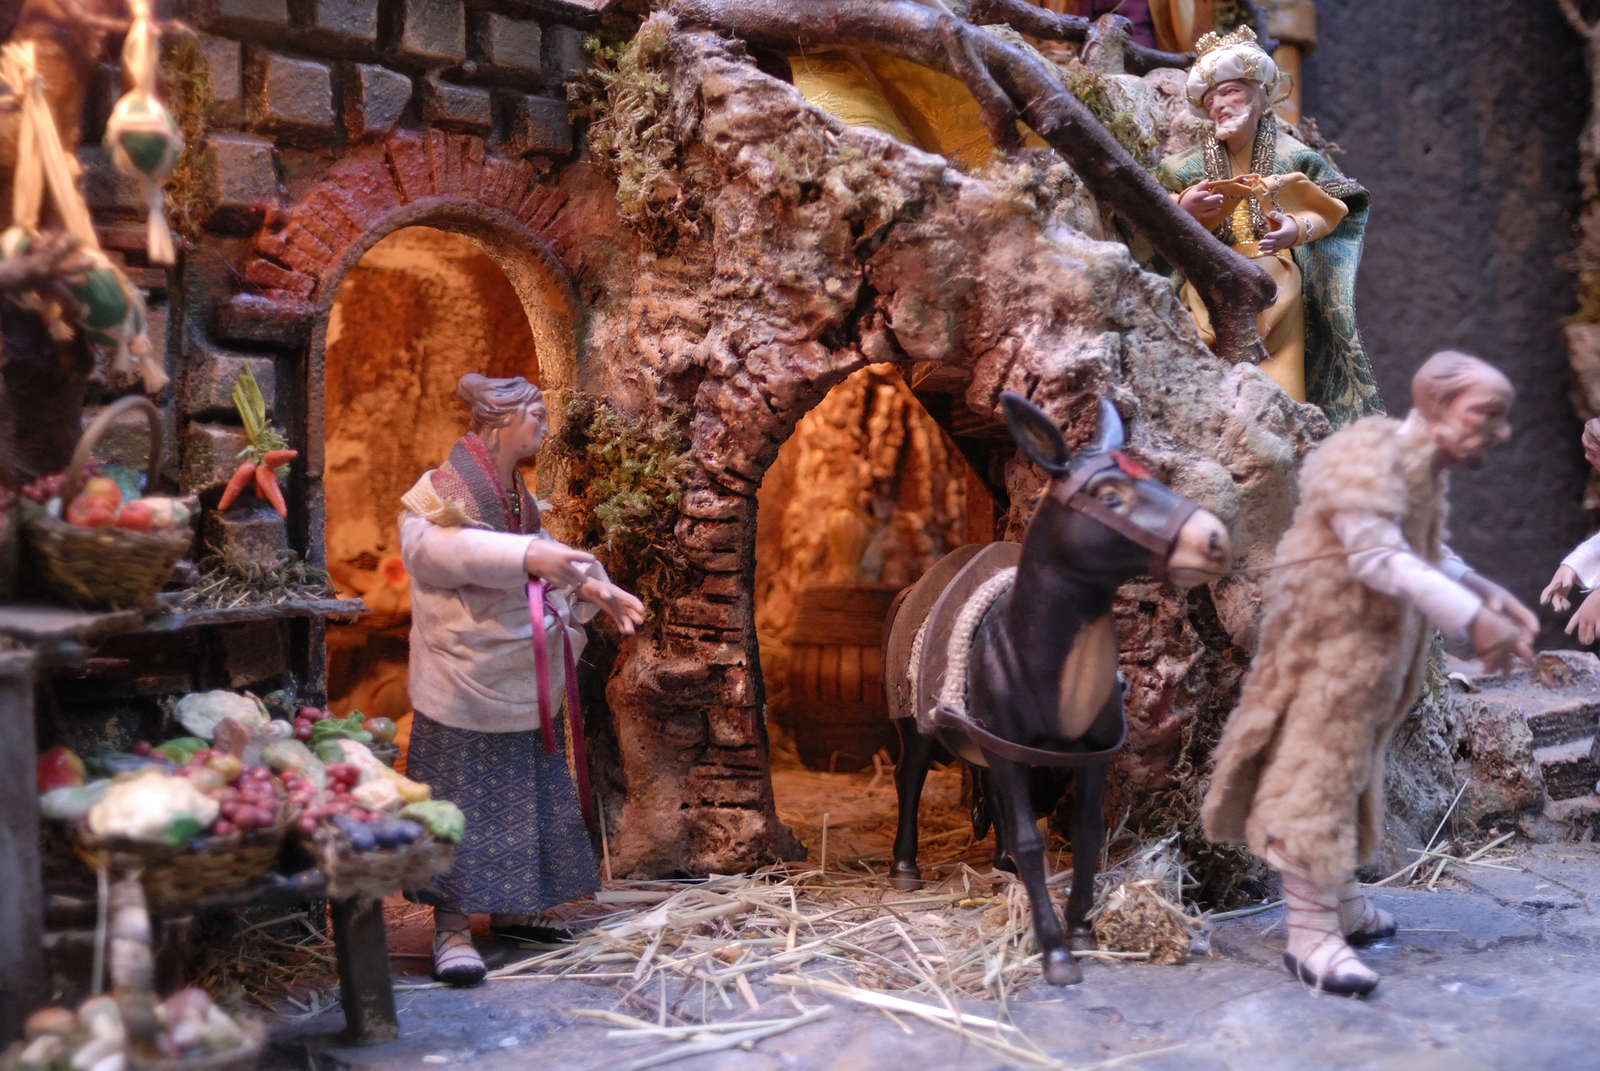 naples nativity scene